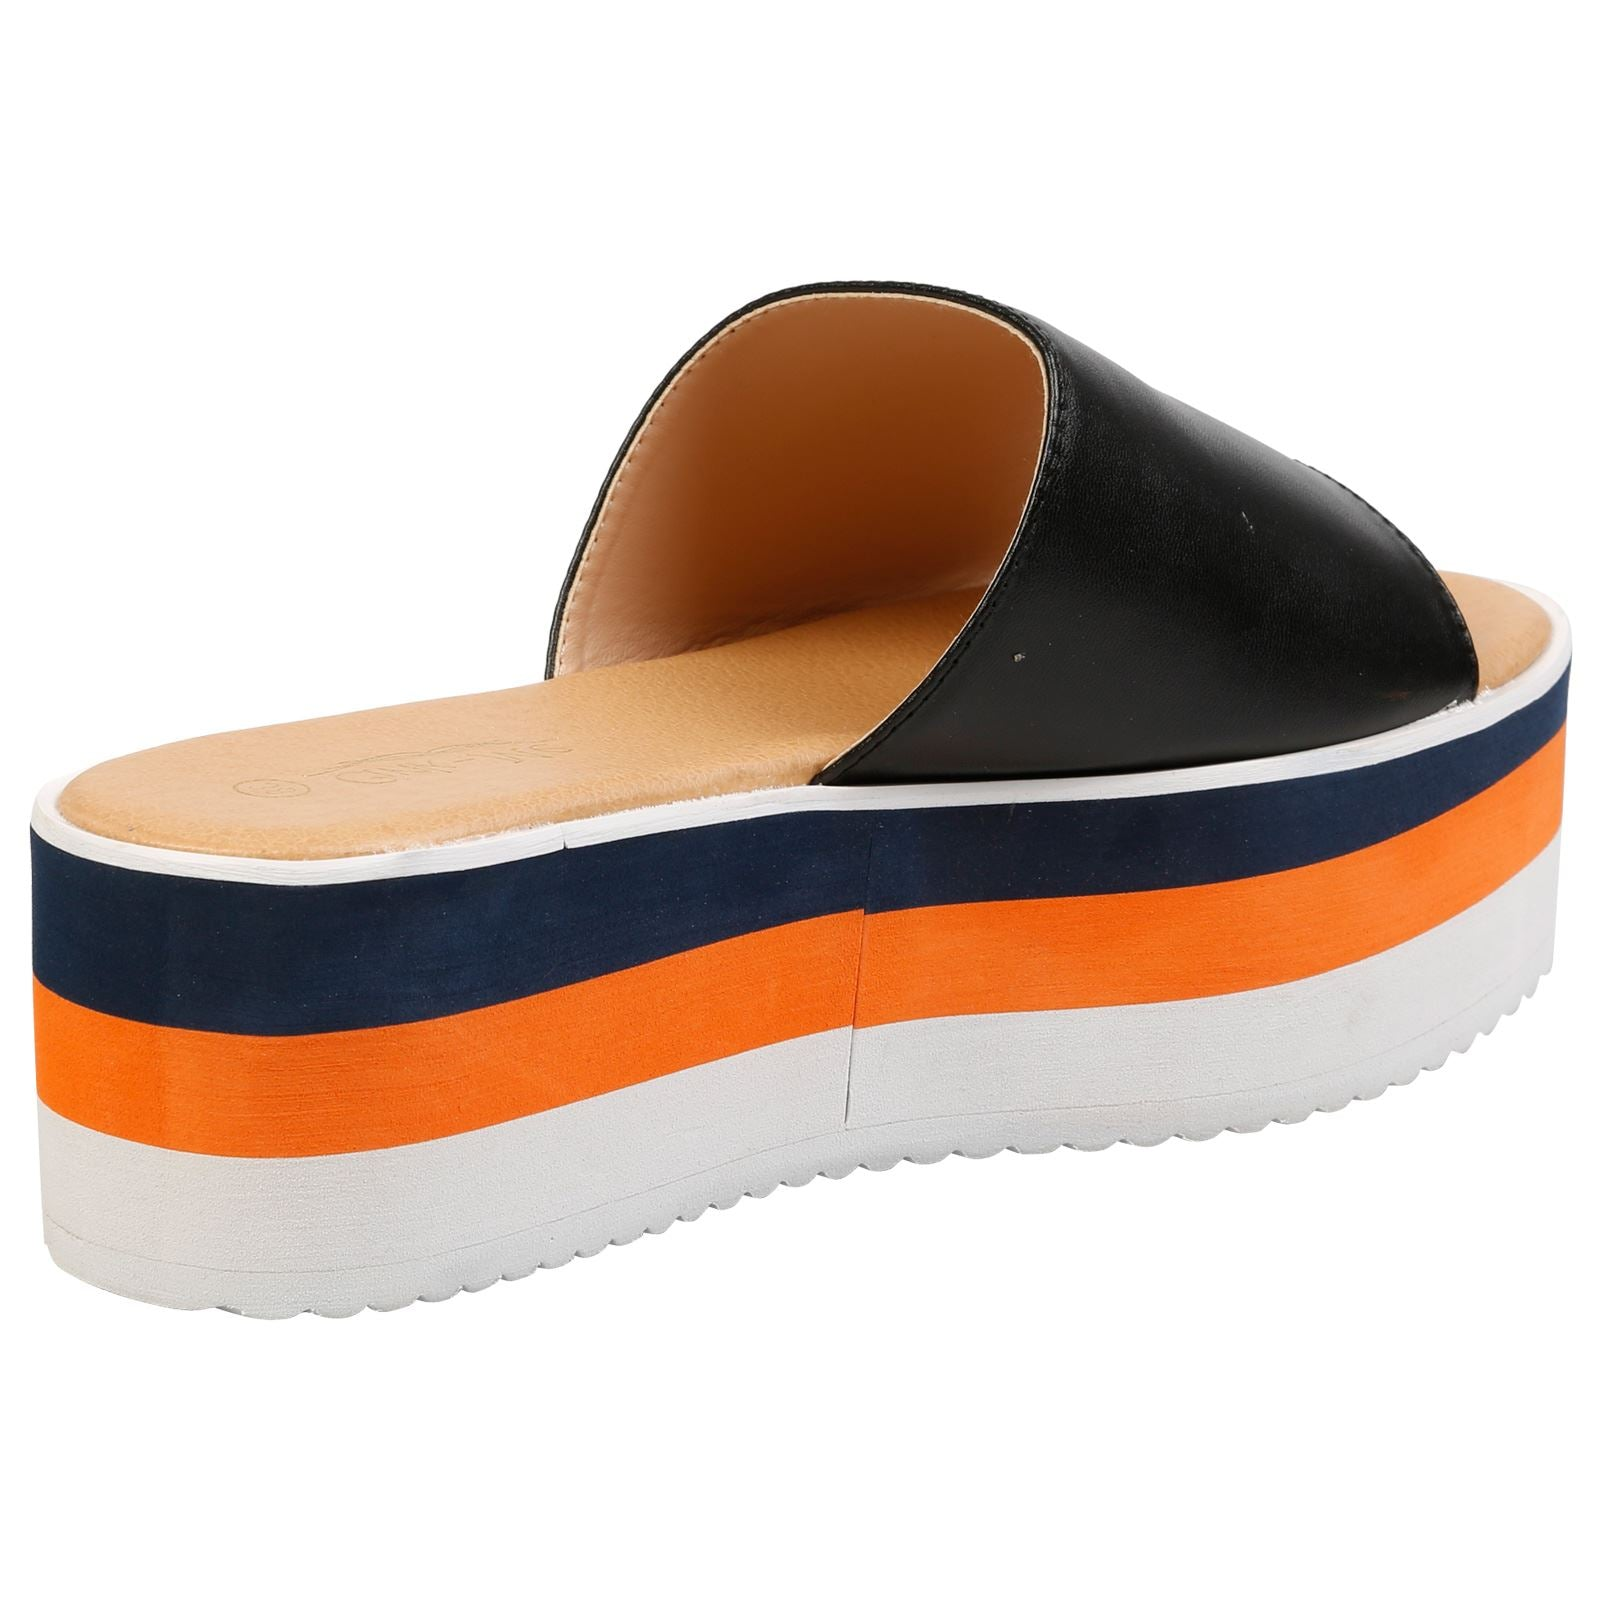 Alva Stripe Sole Flatform Sliders in Black Faux Leather